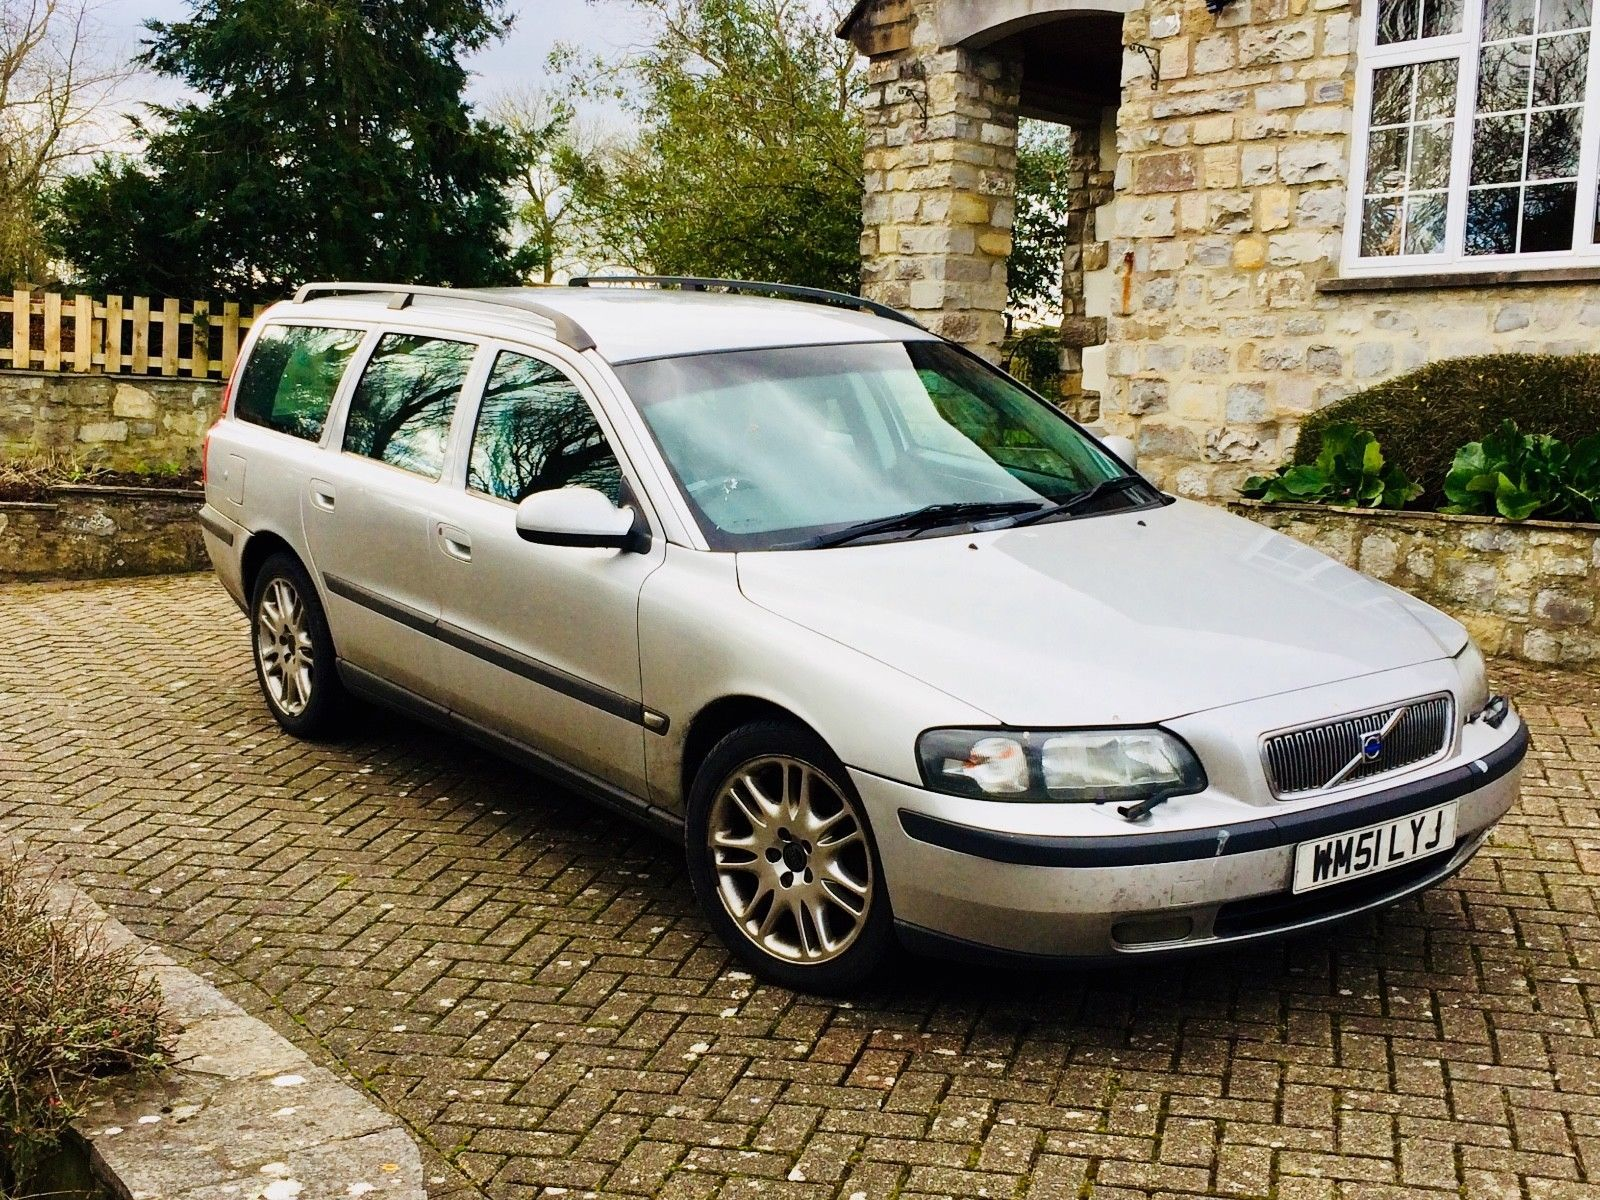 Volvo V70 D5 SE 2.4 sel 2002 Just serviced, 4 new tyres, Non ...